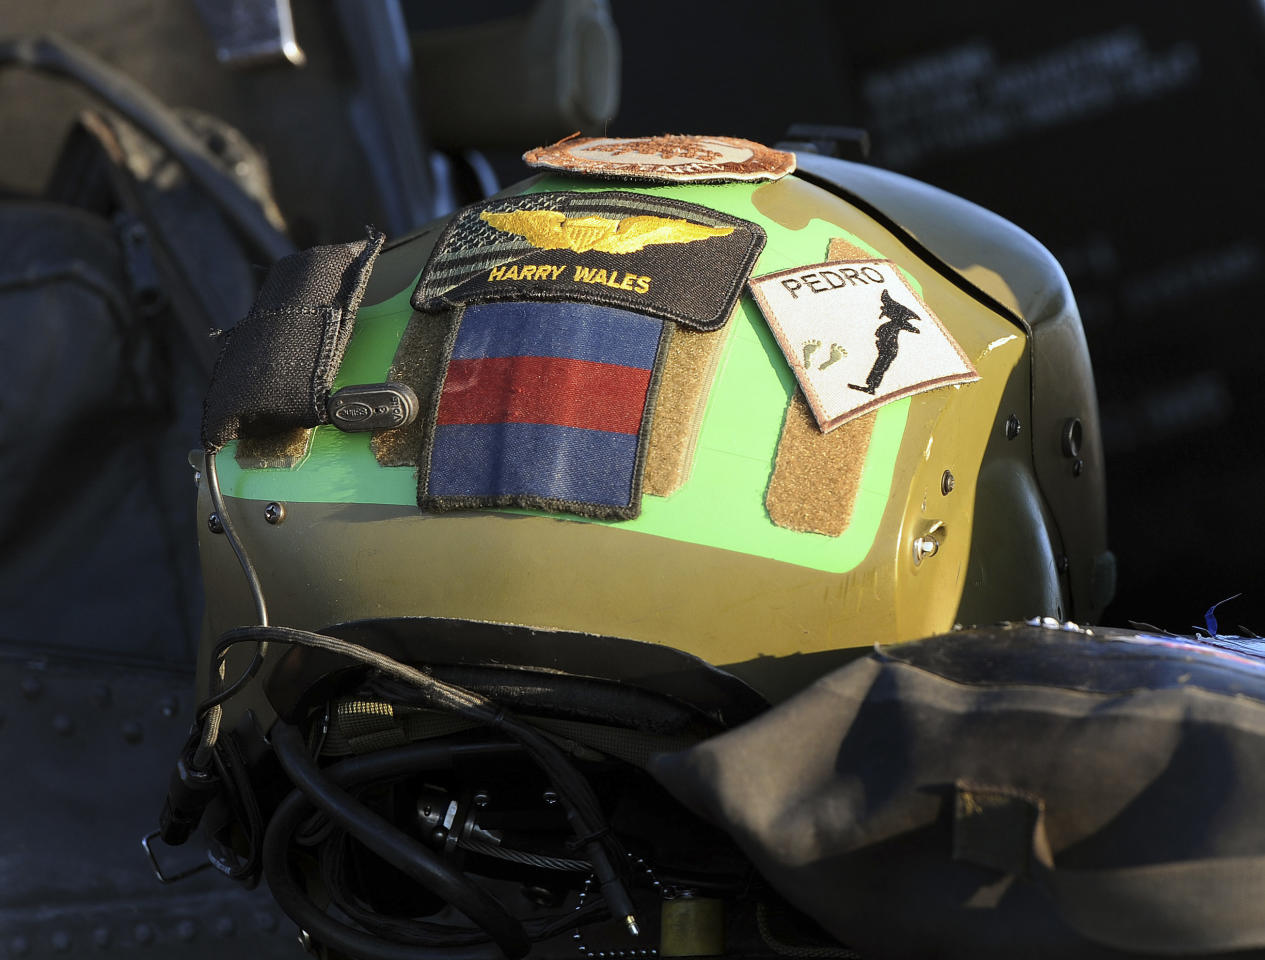 The crash helmet of Prince Harry is seen at the side of the cockpit of his Apache helicopter in Camp Bastion, southern Afghanistan in this photograph taken November 1, 2012. REUTERS/John Stillwell/Pool